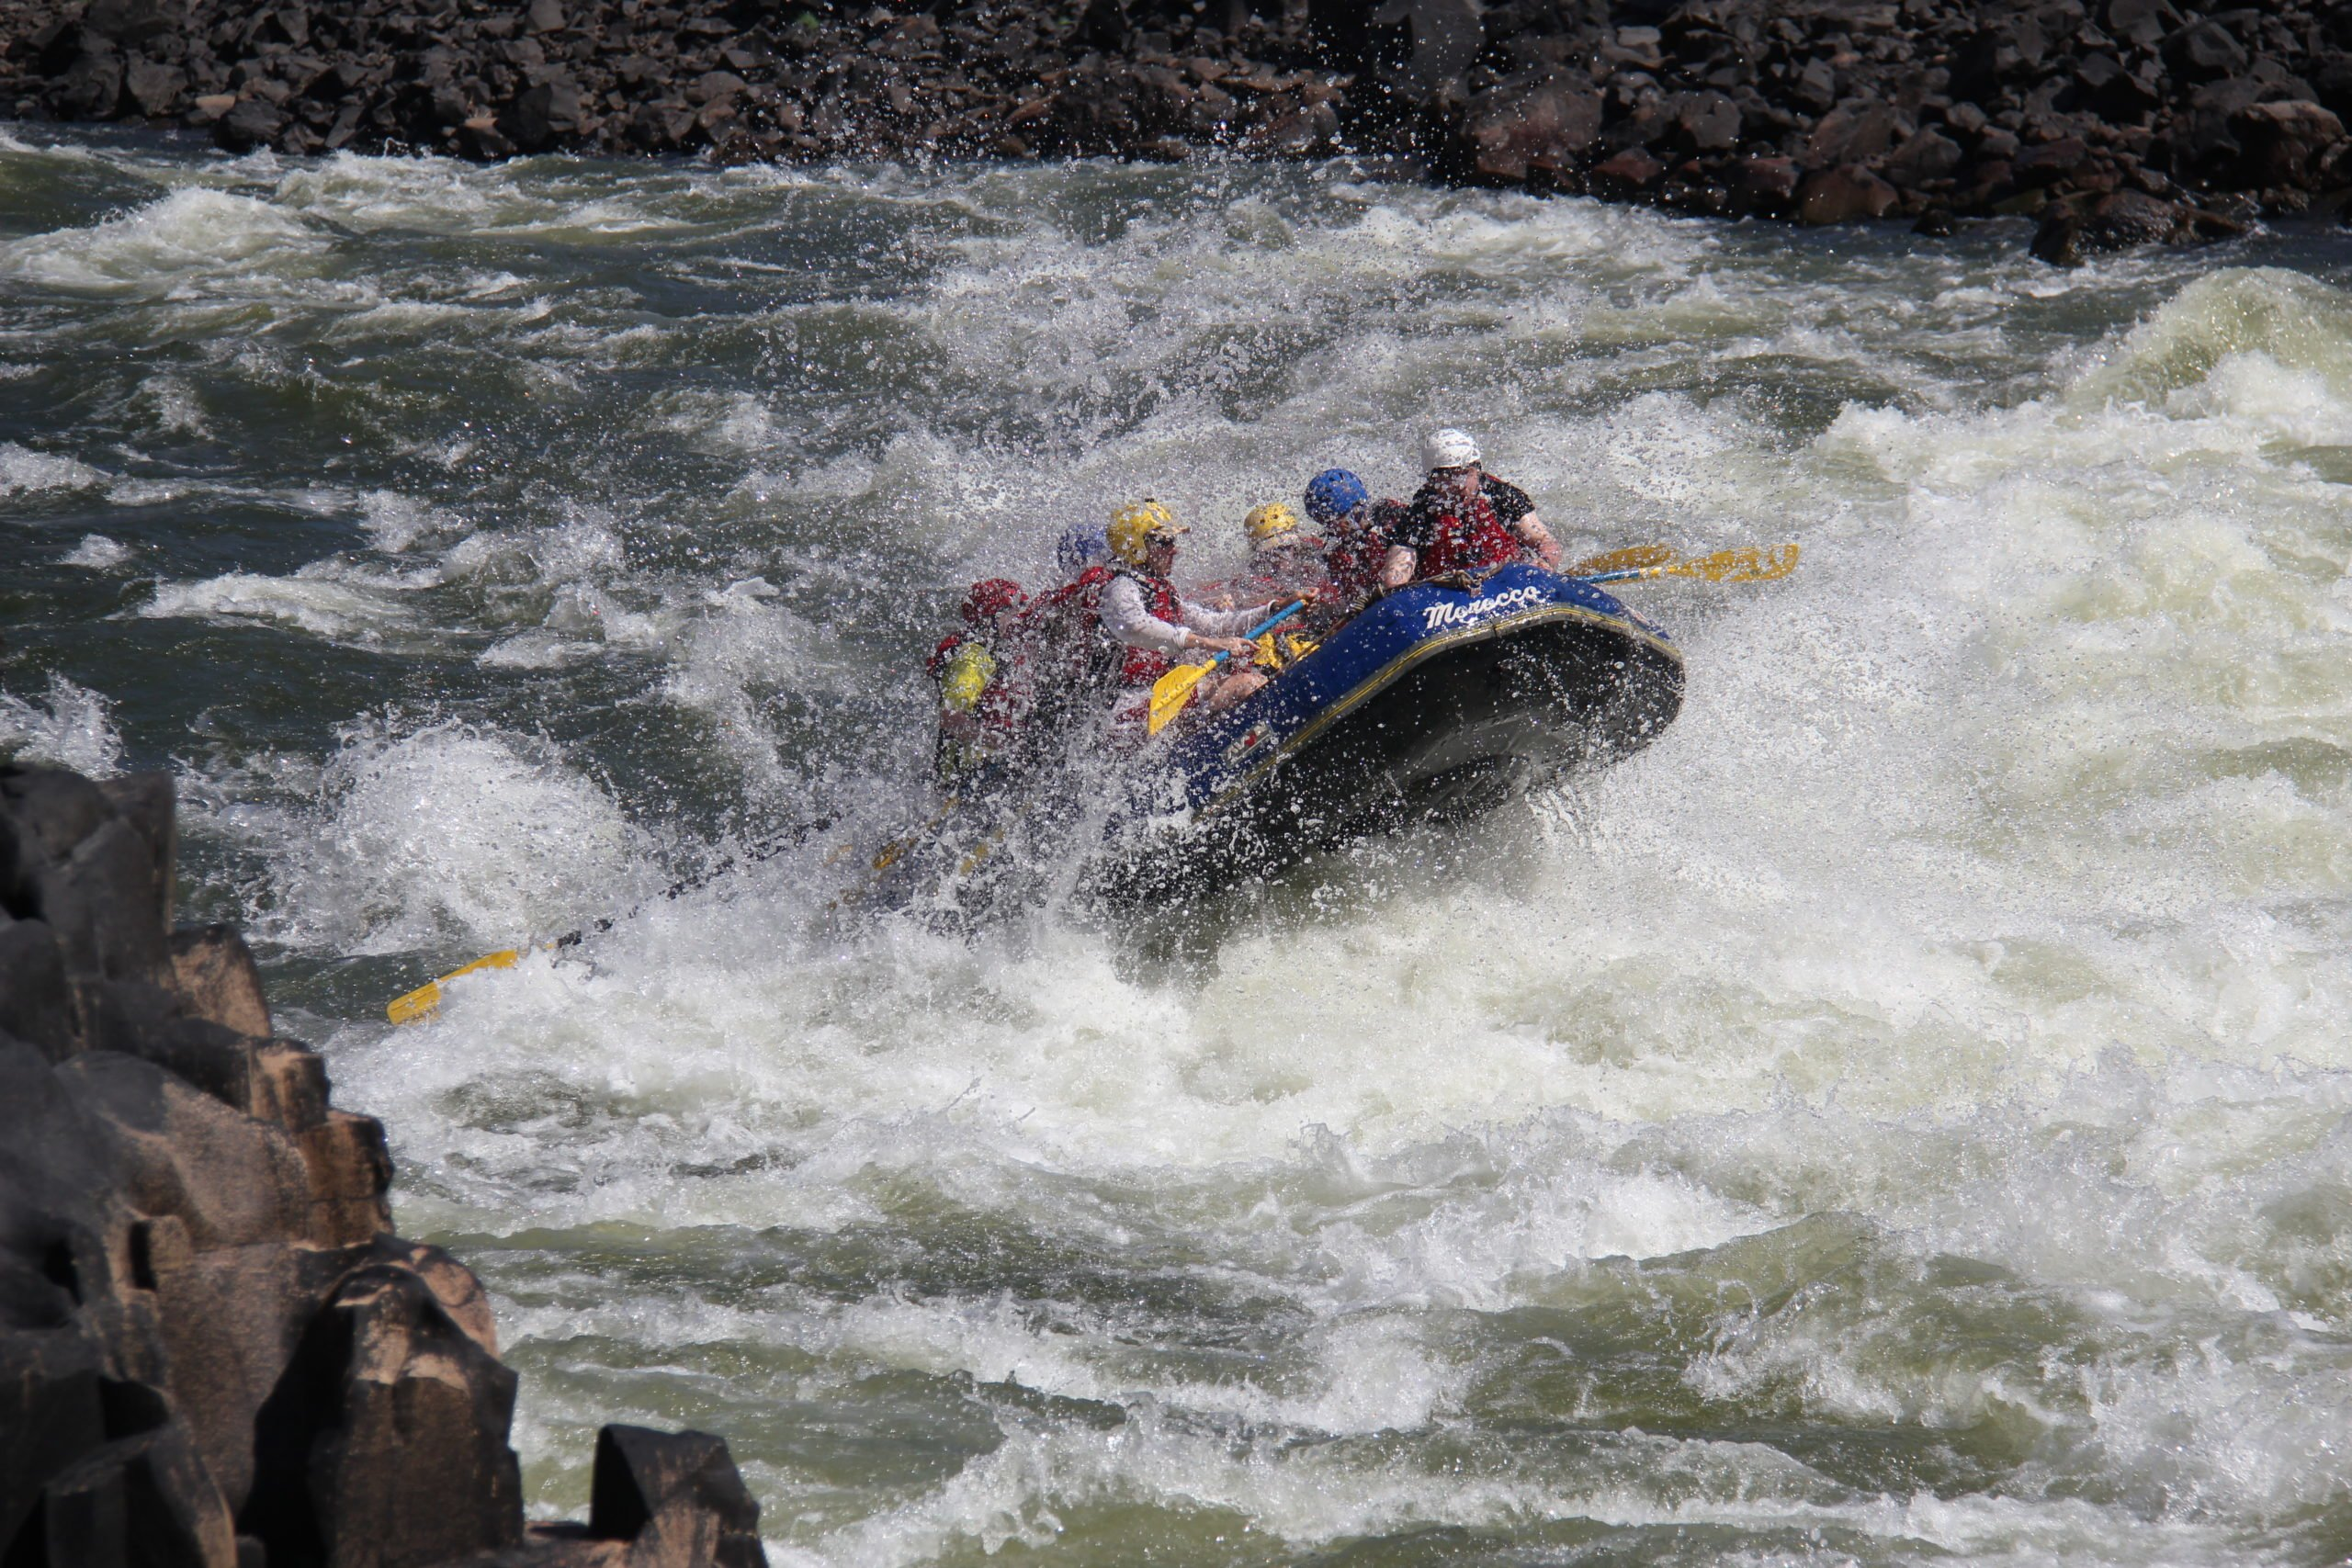 The world class rapids on the Zambezi